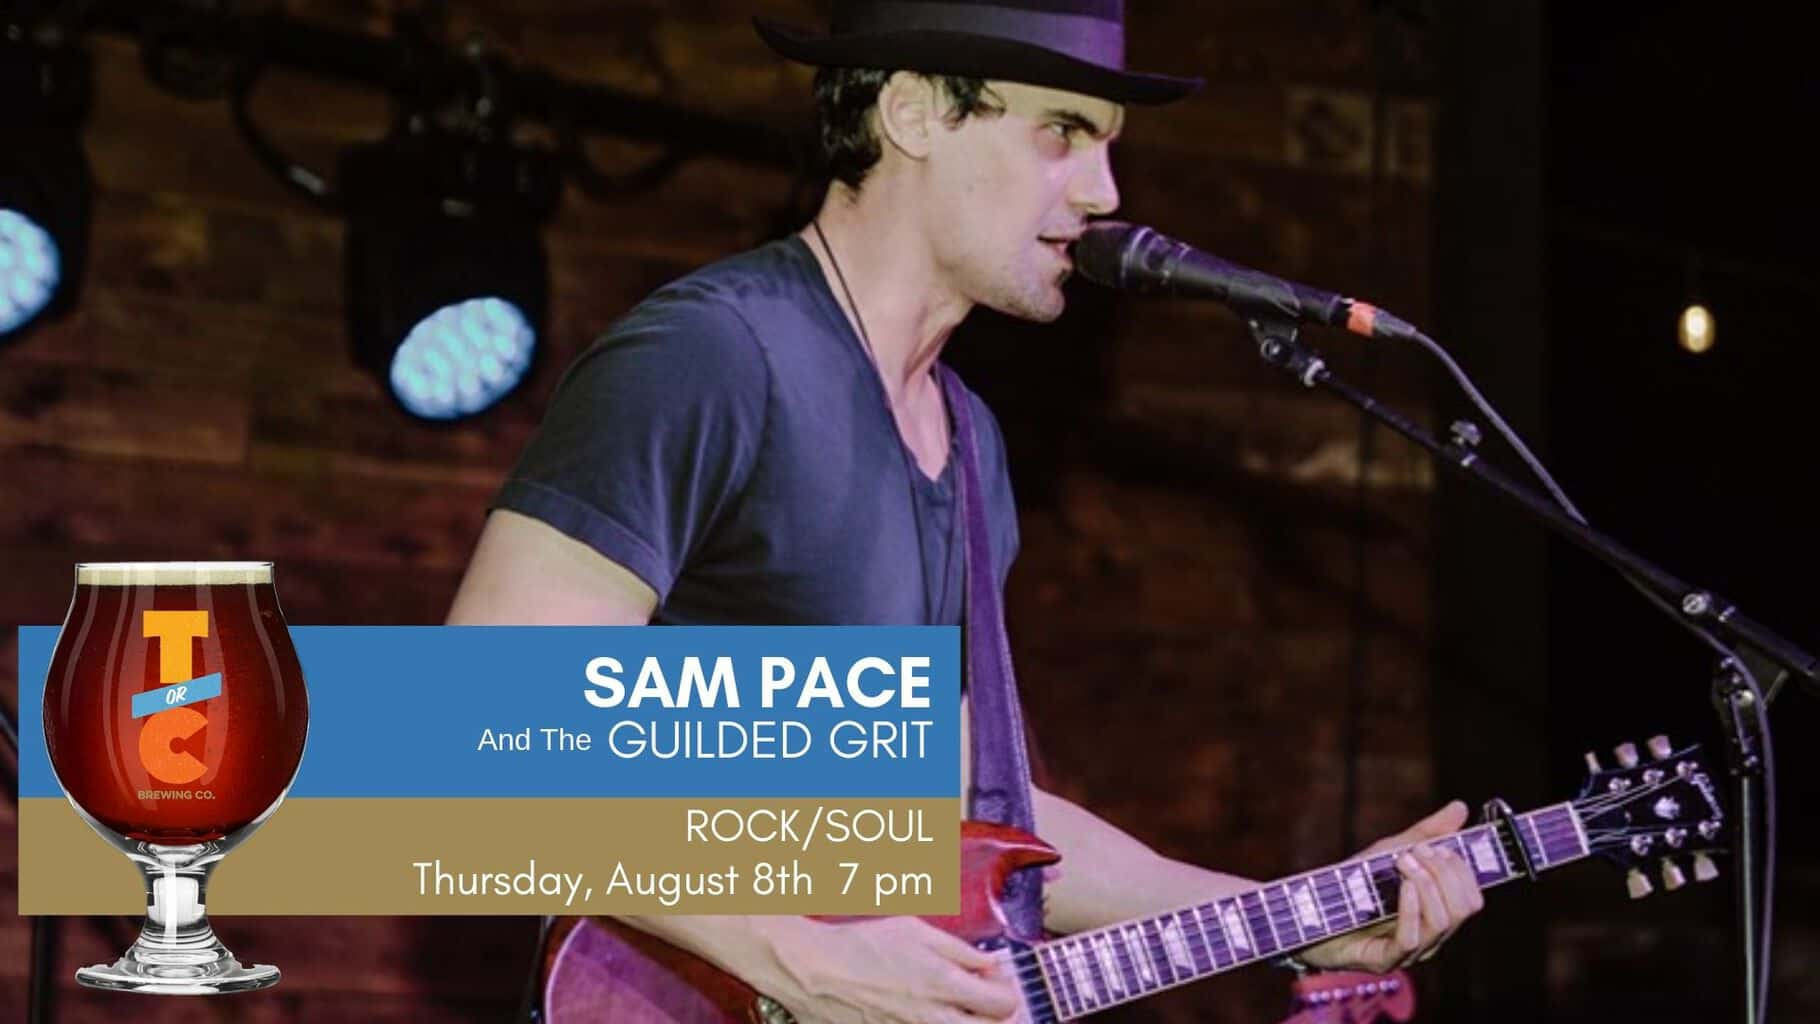 Sam Pace and The Gilded Grit